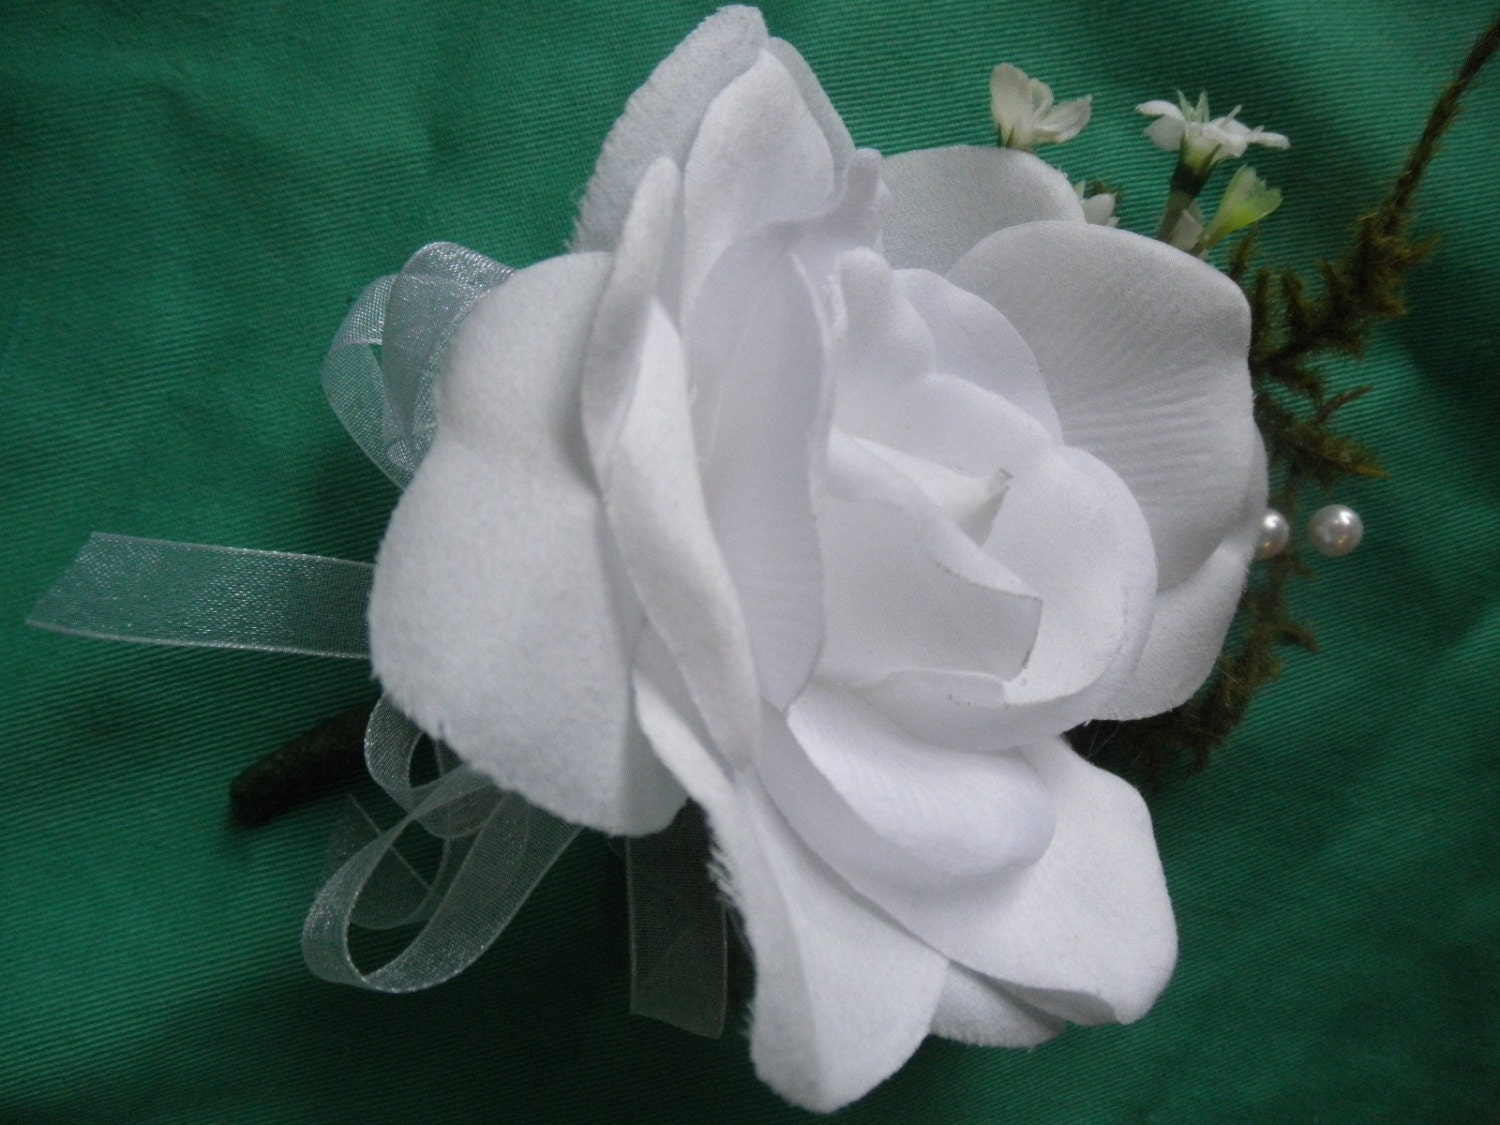 Prom Corsage Whie Gardenia Corsage And Man Boutonniere Soft Touch